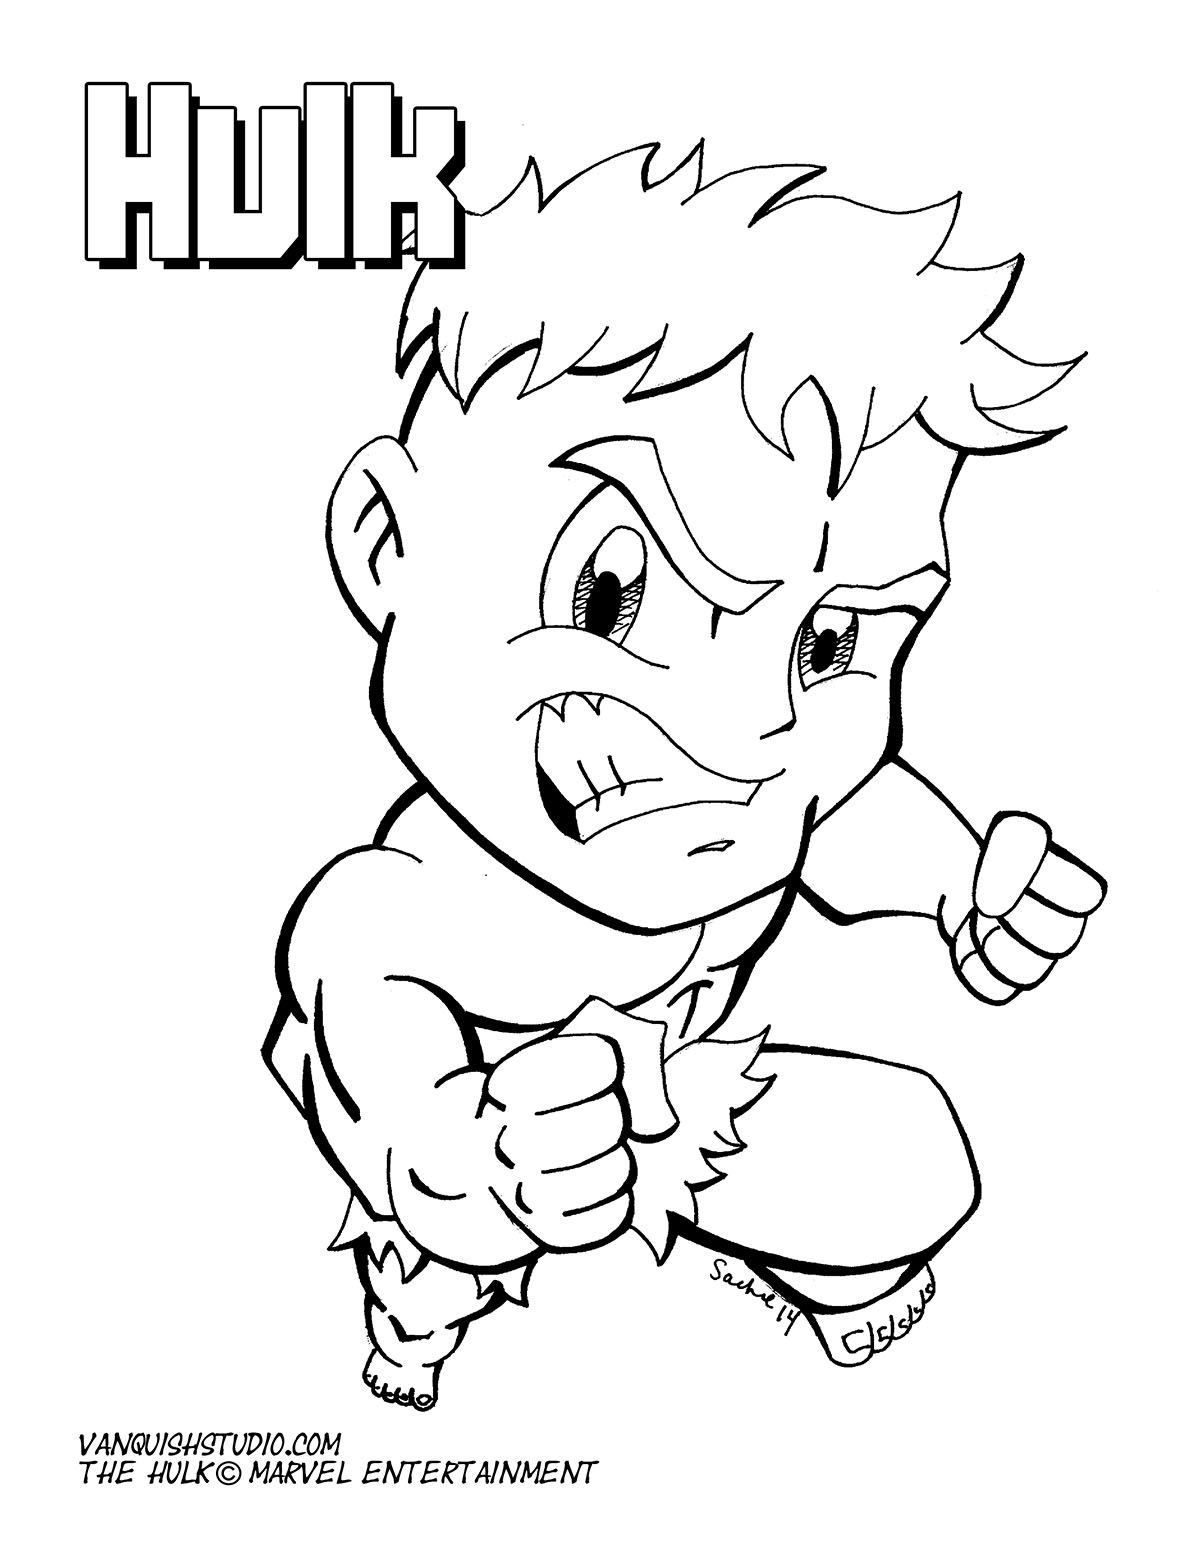 Baby Hulk Coloring Pages : coloring, pages, Chibi-Fusion, Coloring, Pages,, Chibi, Avengers, Pages